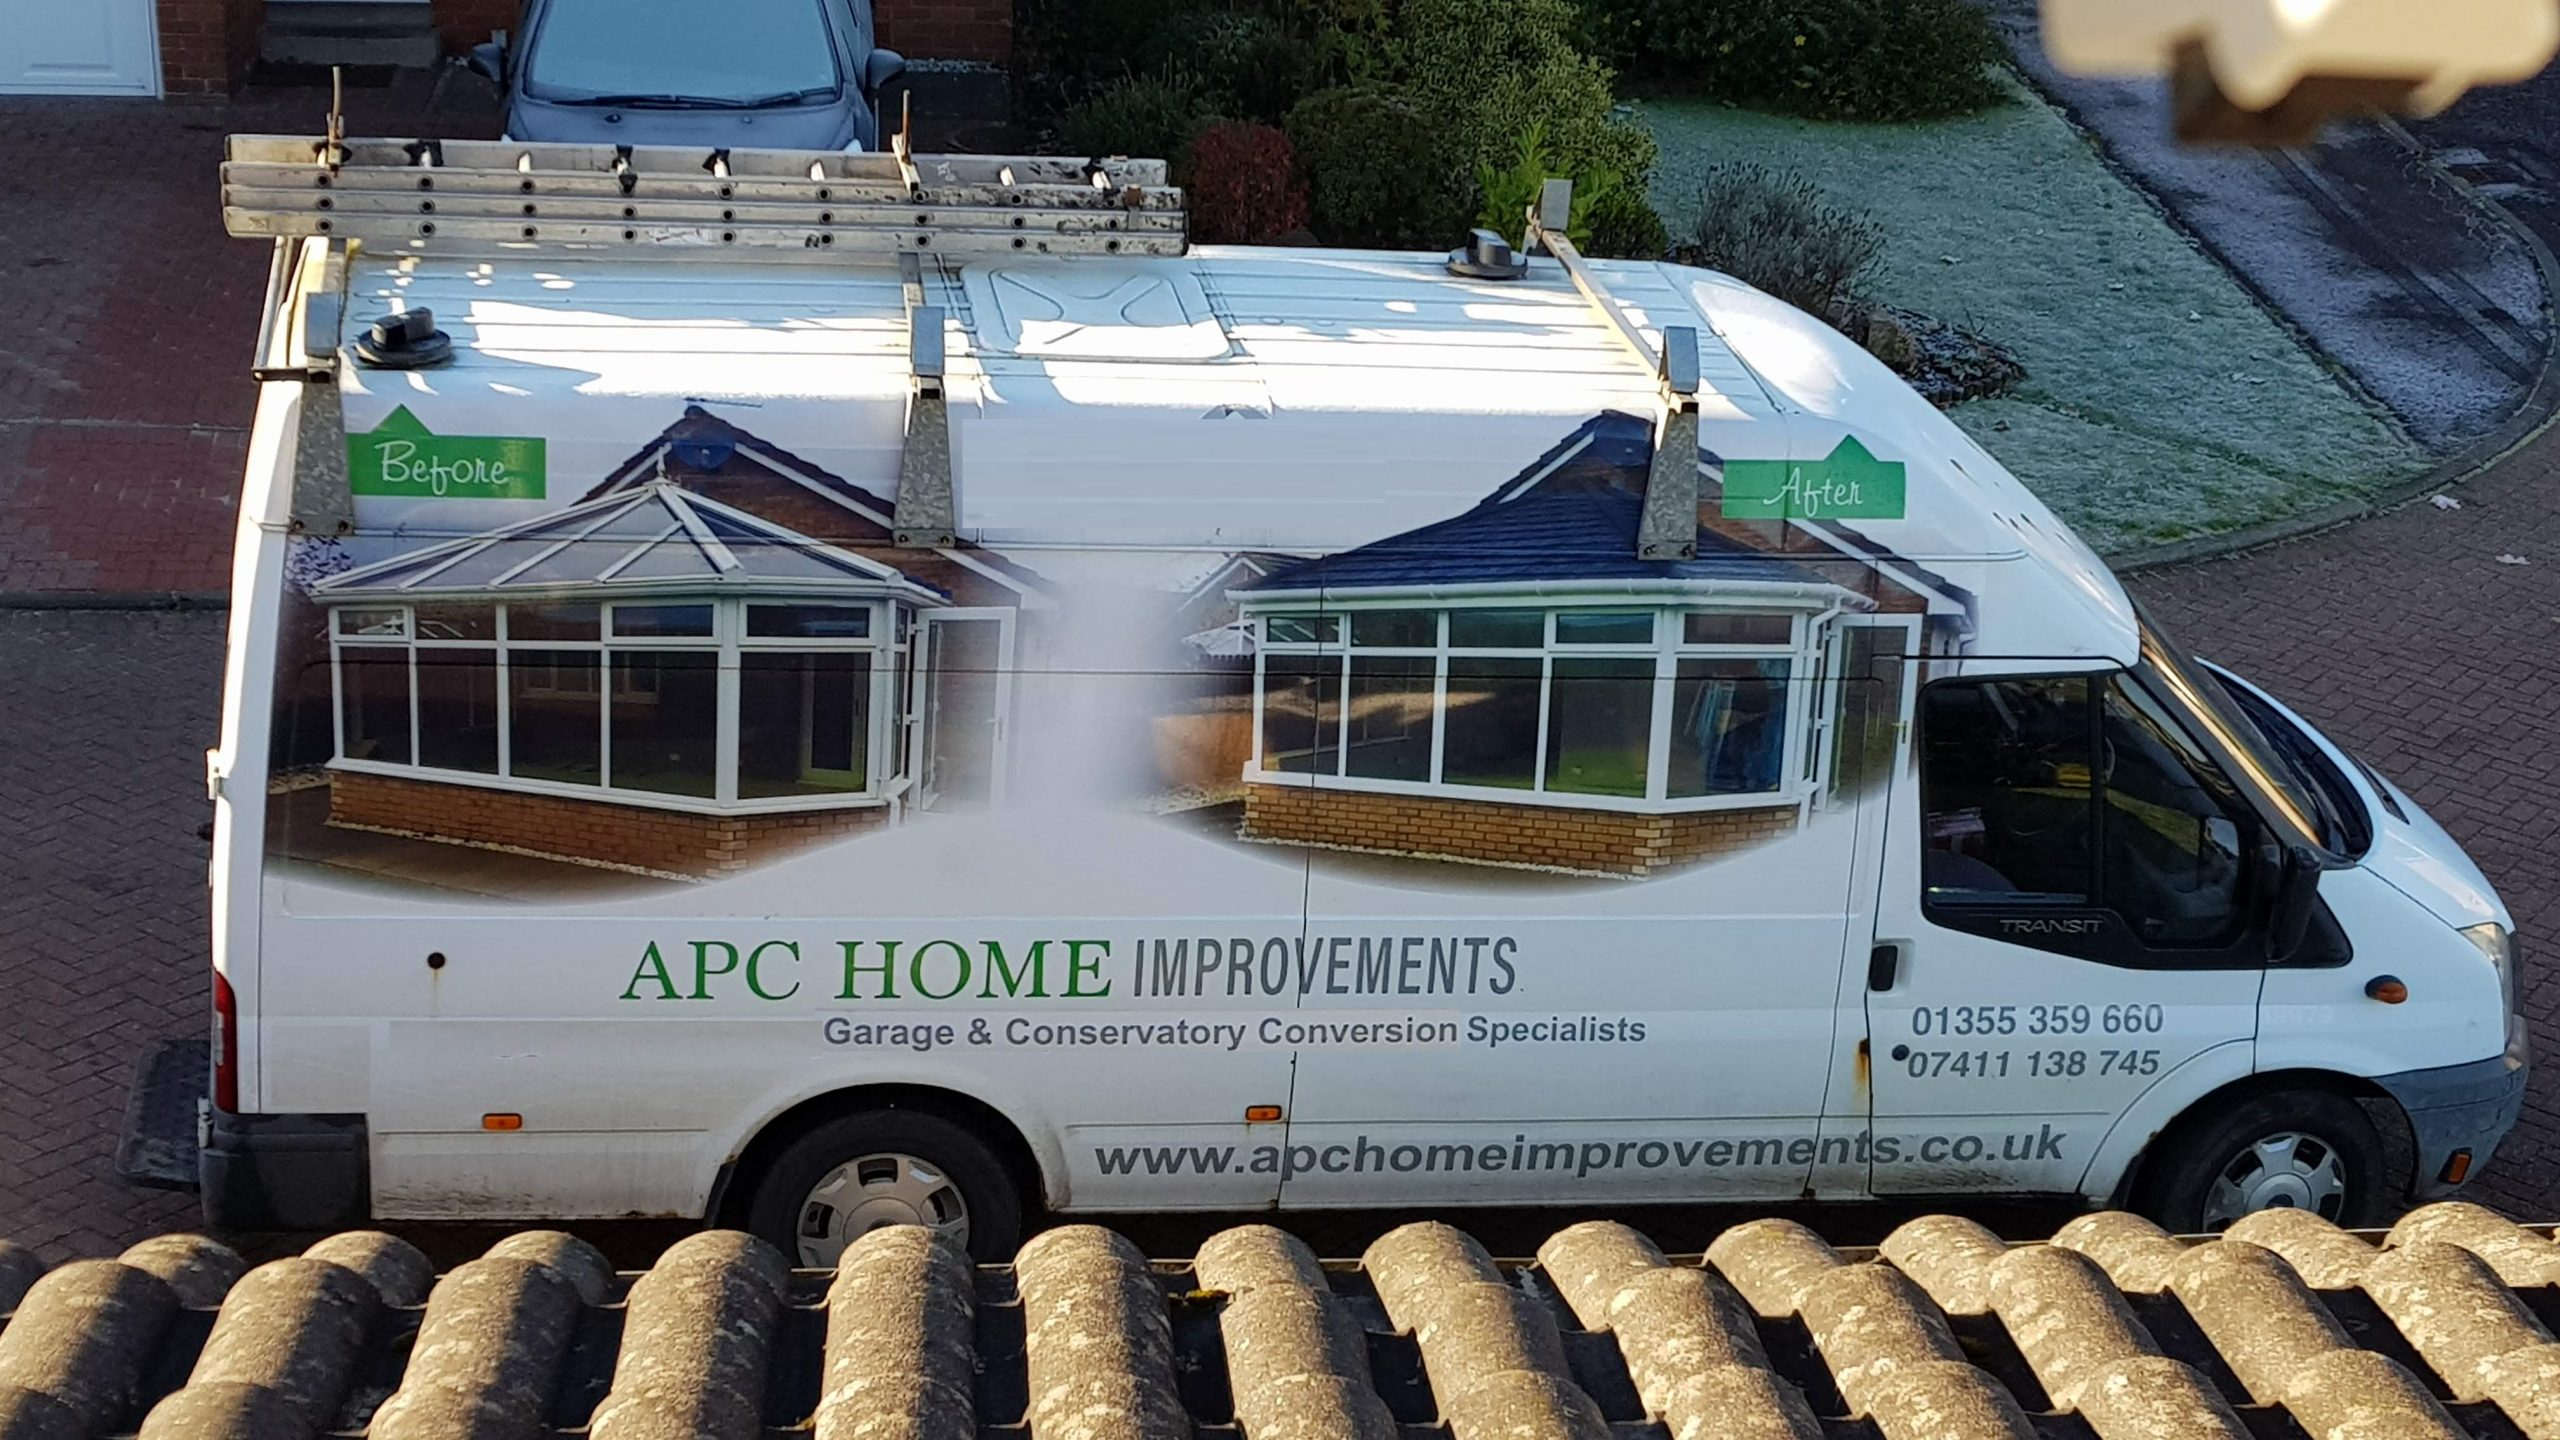 APC Home Improvements Van